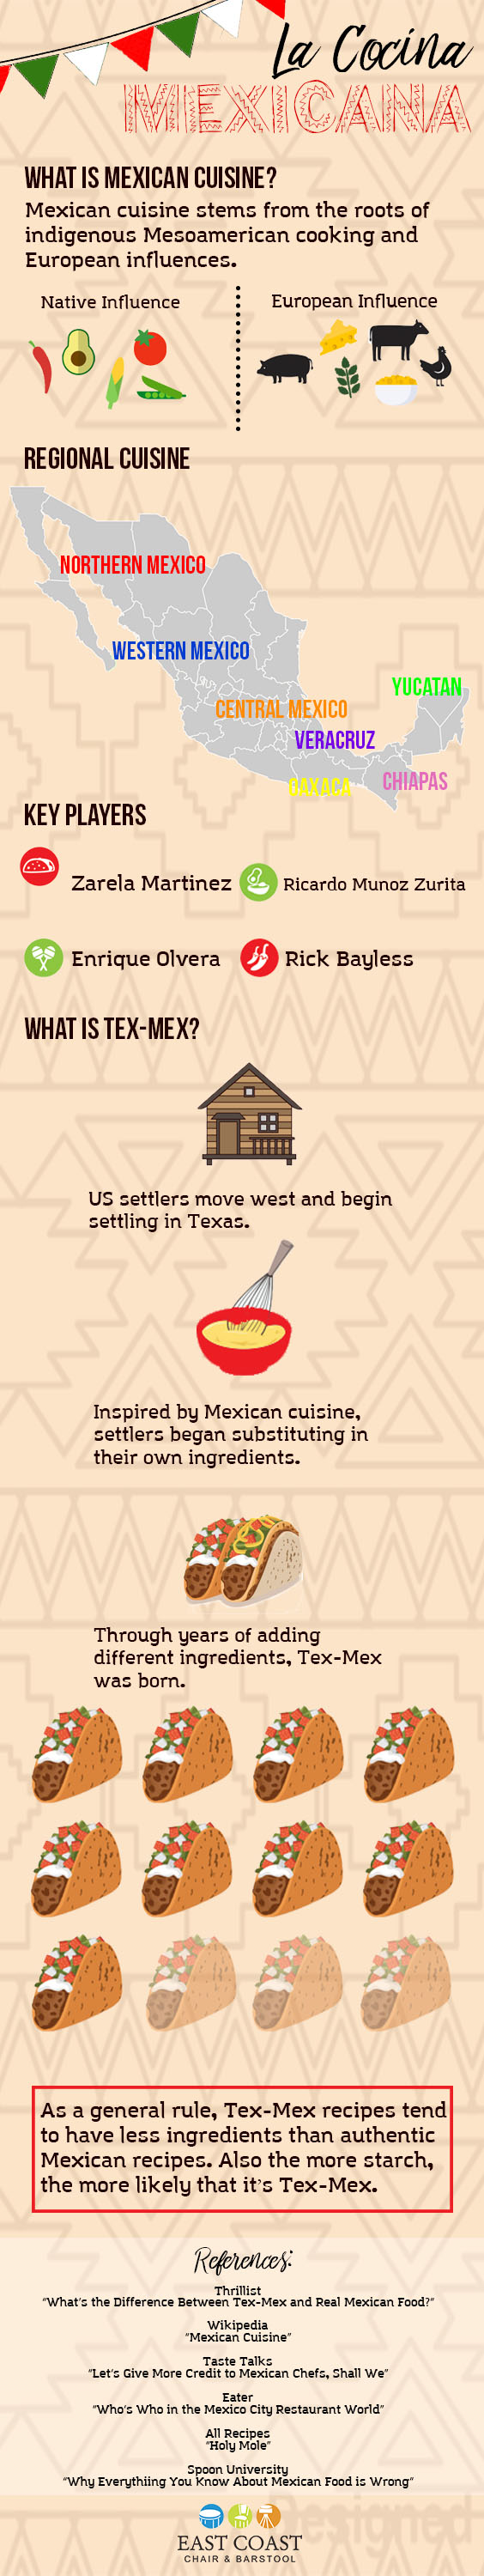 Mexican Cuisine Traditions